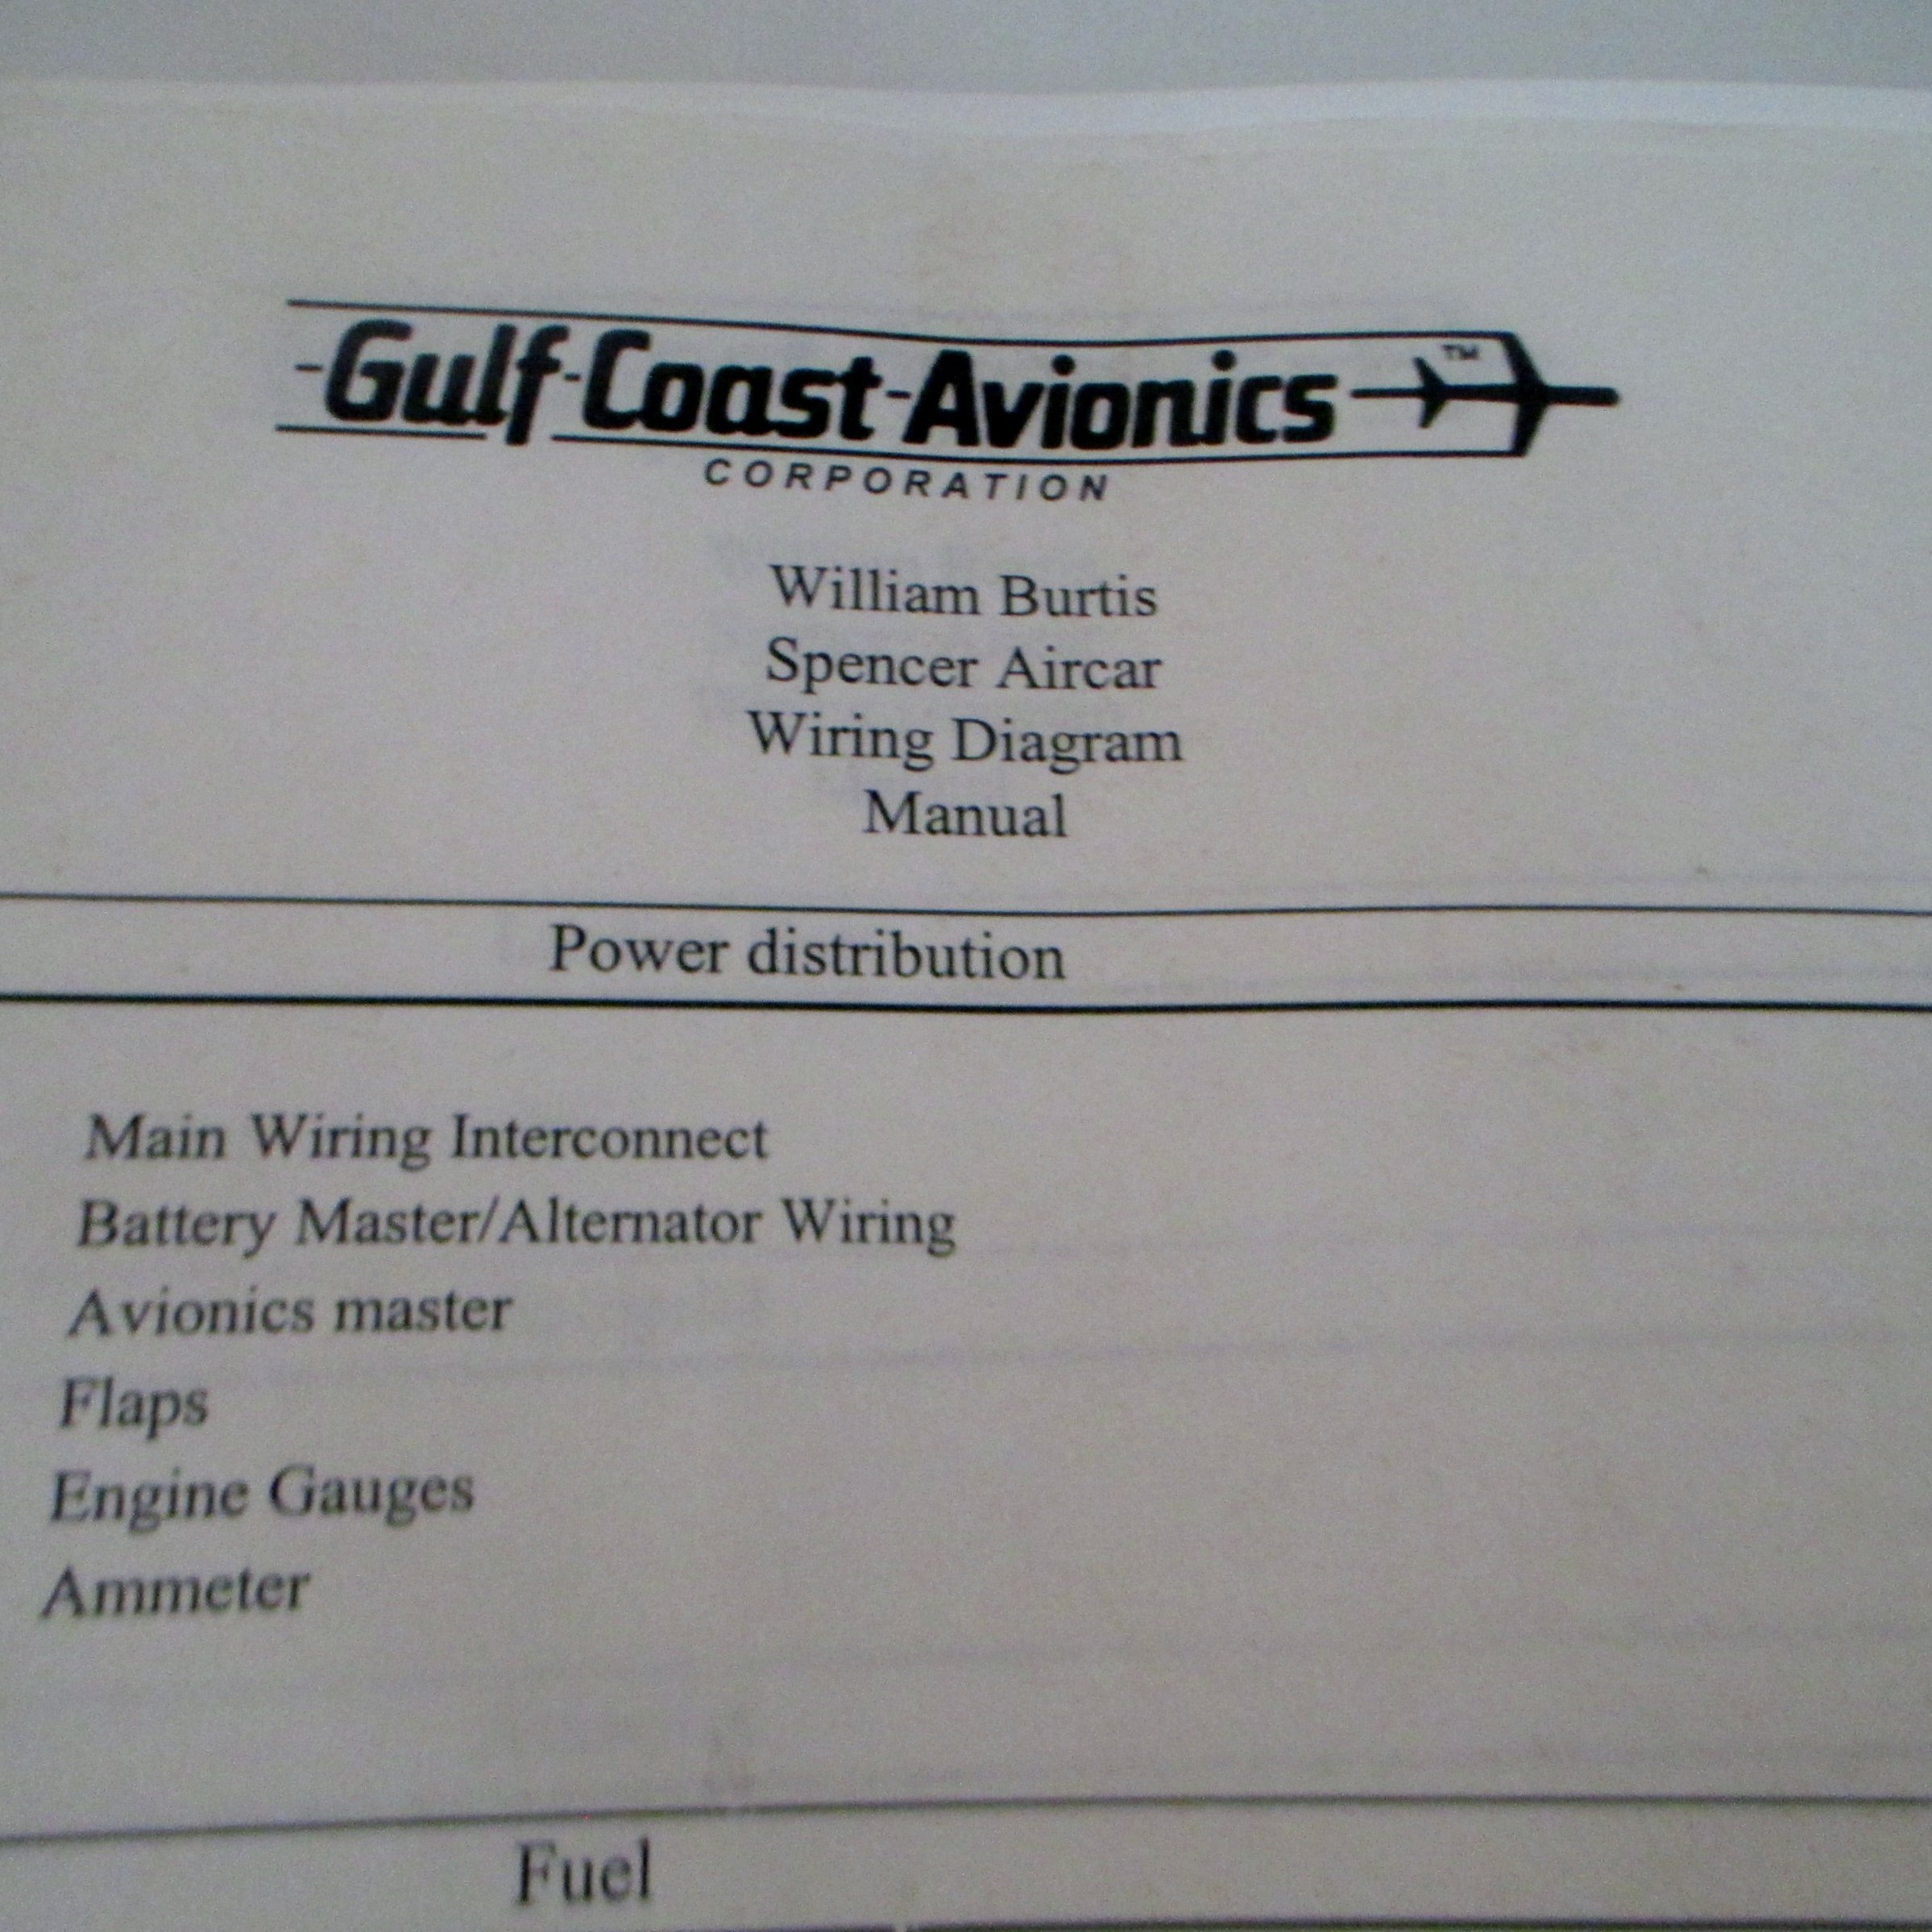 Spencer Aircar Shematic Drawings Wiring Diagram Manual Drawn up by Gulf  Coast Avionics: Bill Burtis: 0763985703716: Amazon.com: Books